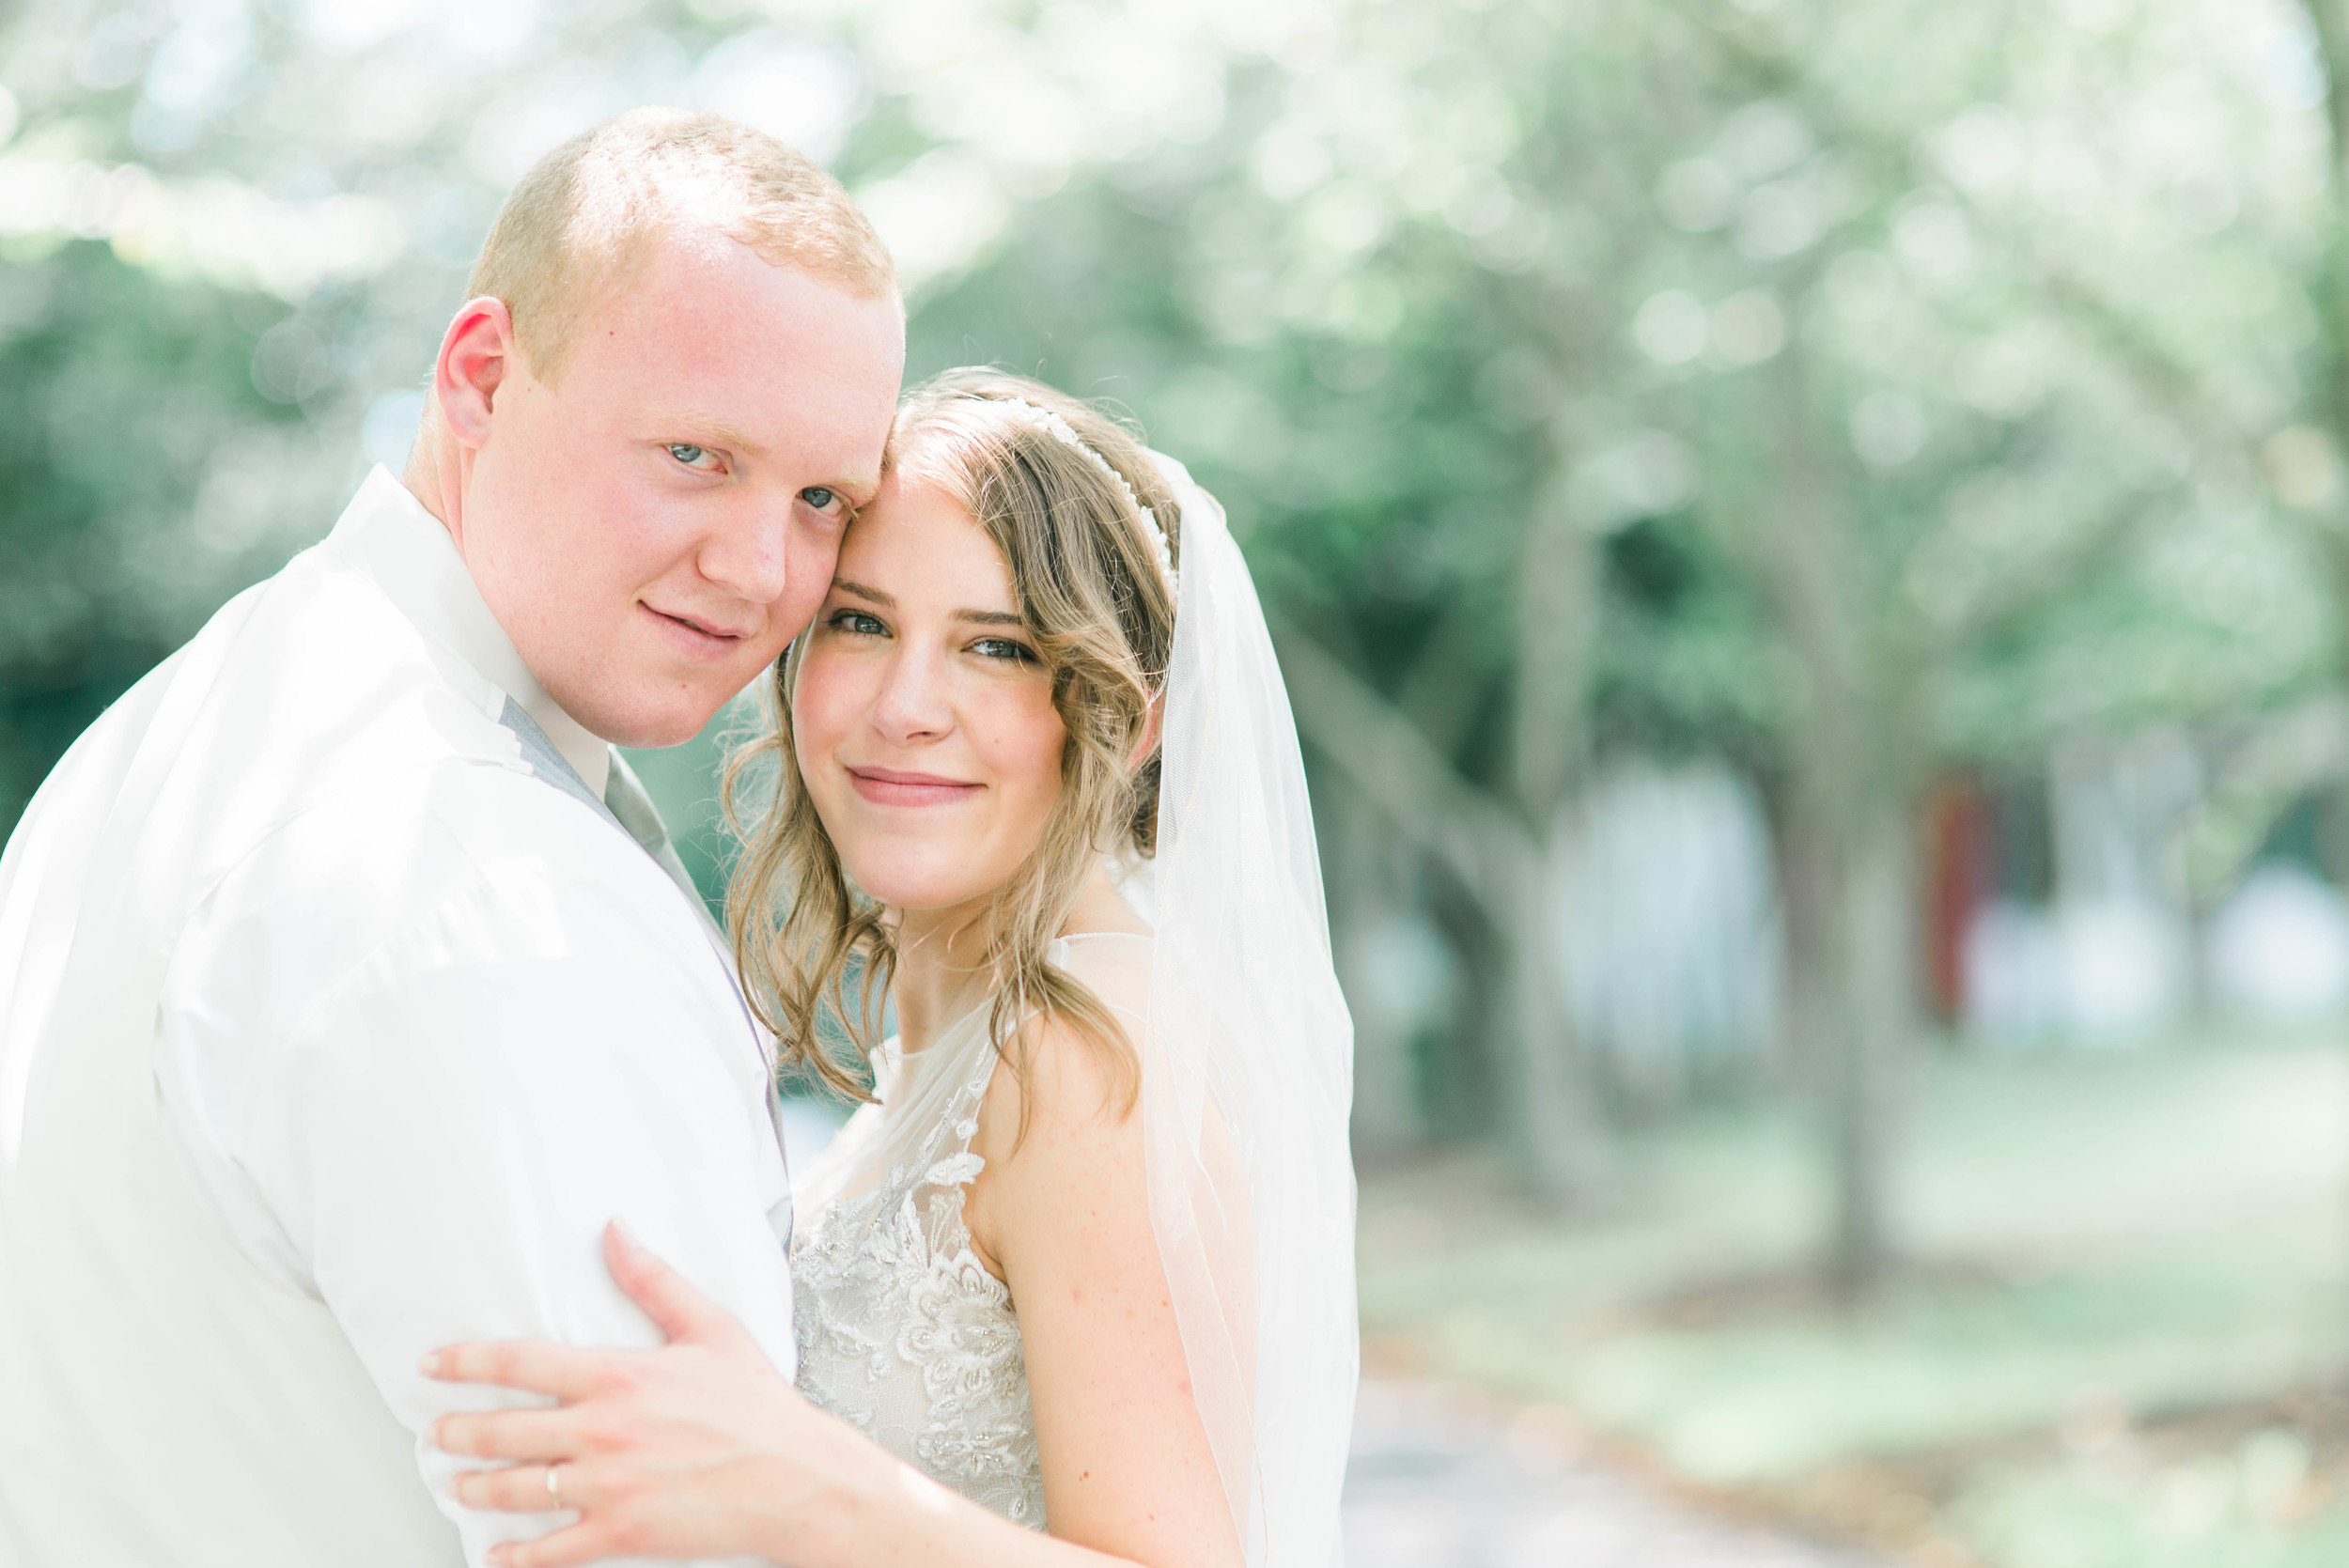 DIXONweddingpreview-29.jpg